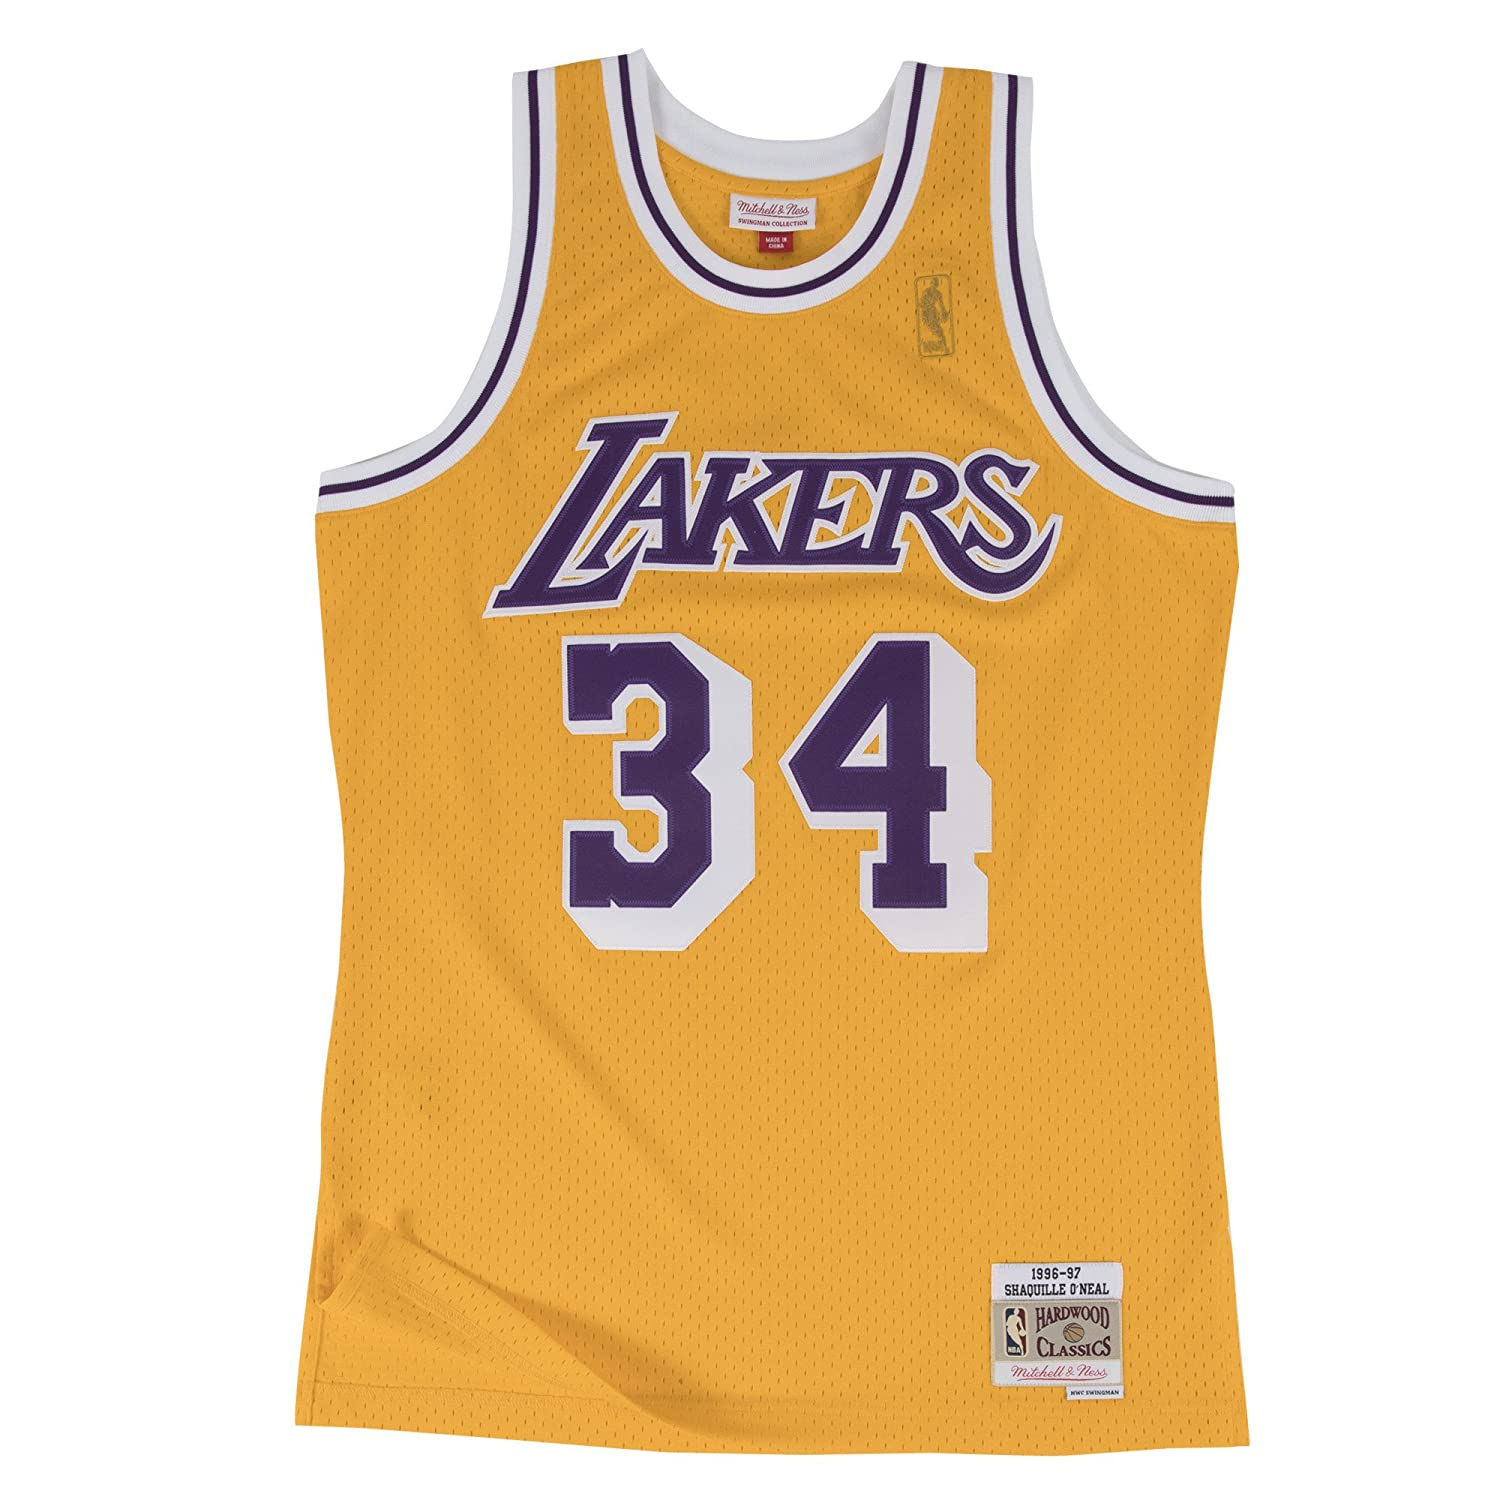 Mitchell & Ness L.A. Lakers 34Shaquille O' Neal swingman Retro maglia Jersey